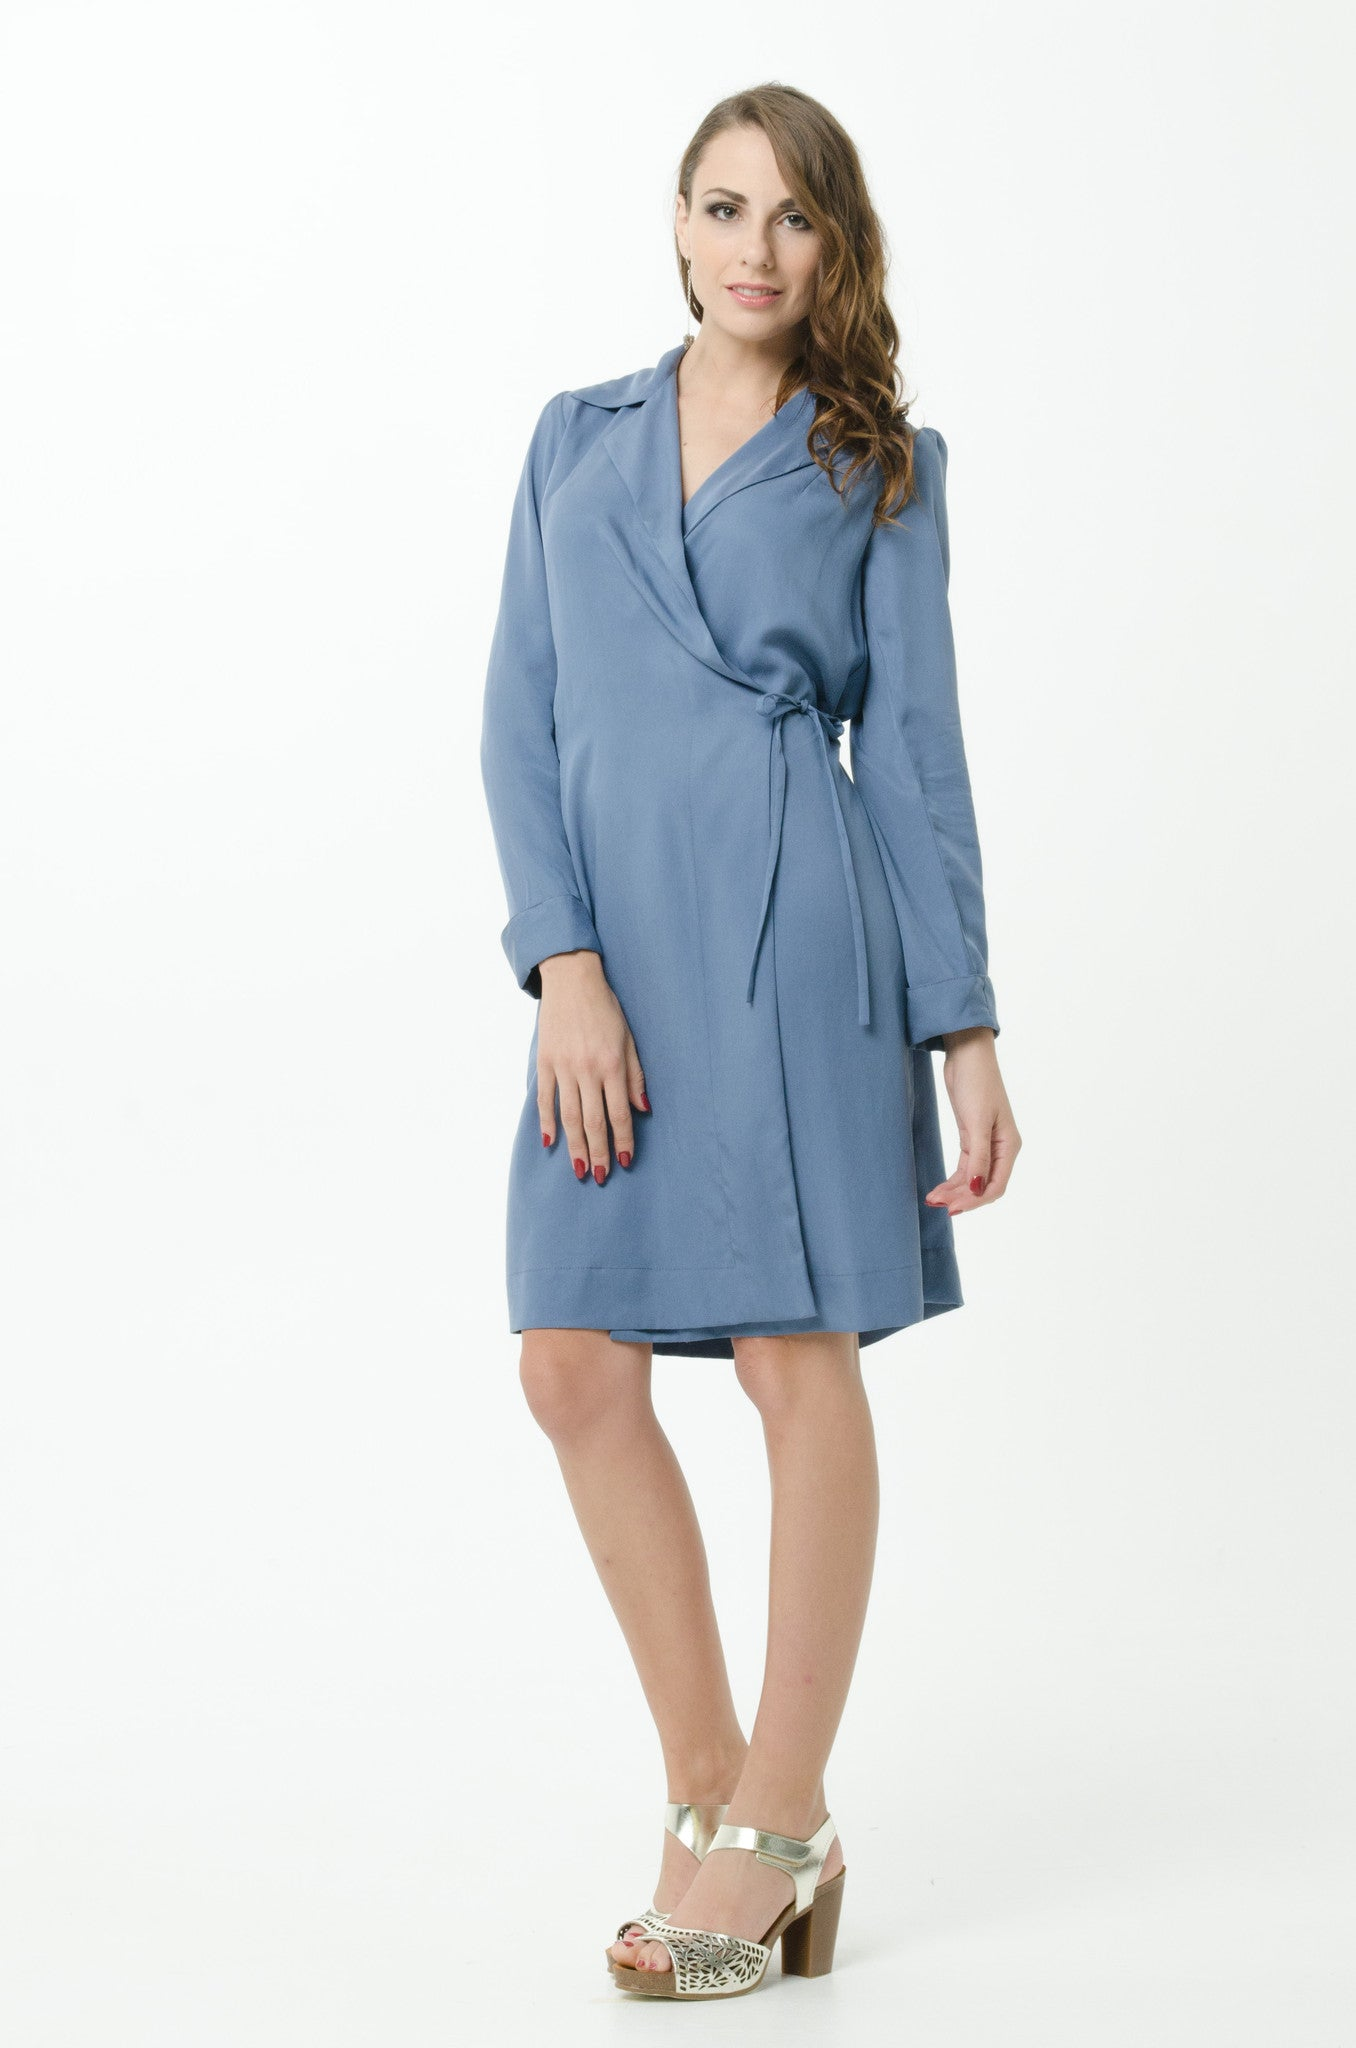 Vesta Wrap Coat Dress - Denim was $268 now $198